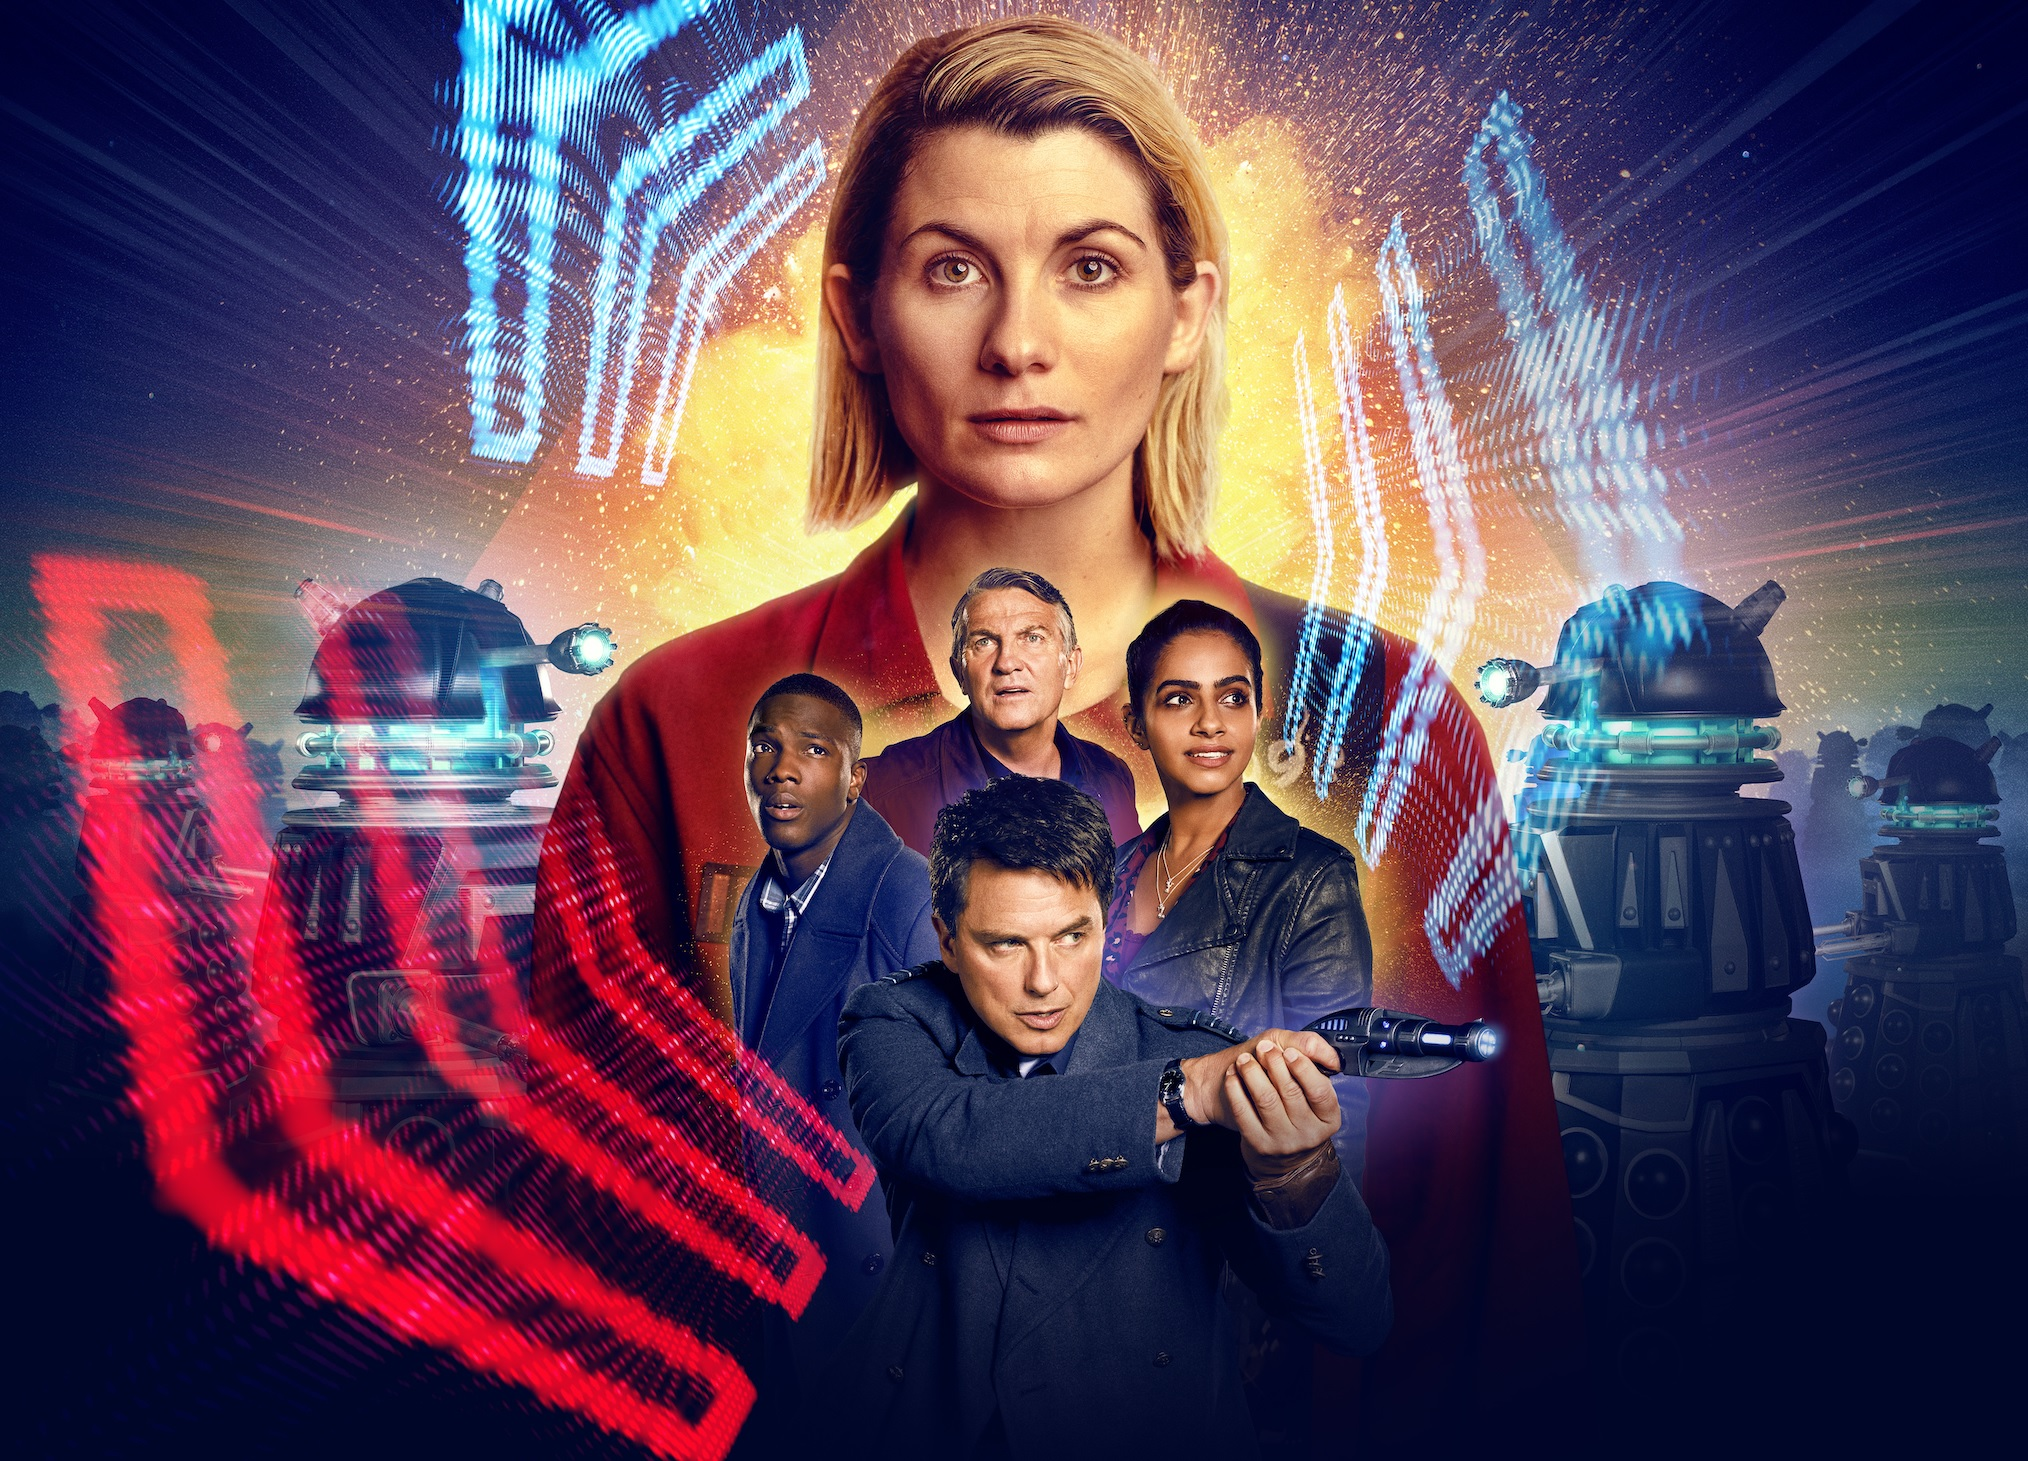 You'll Be Able to Watch Revolution of the Daleks in 4K UHD on iPlayer